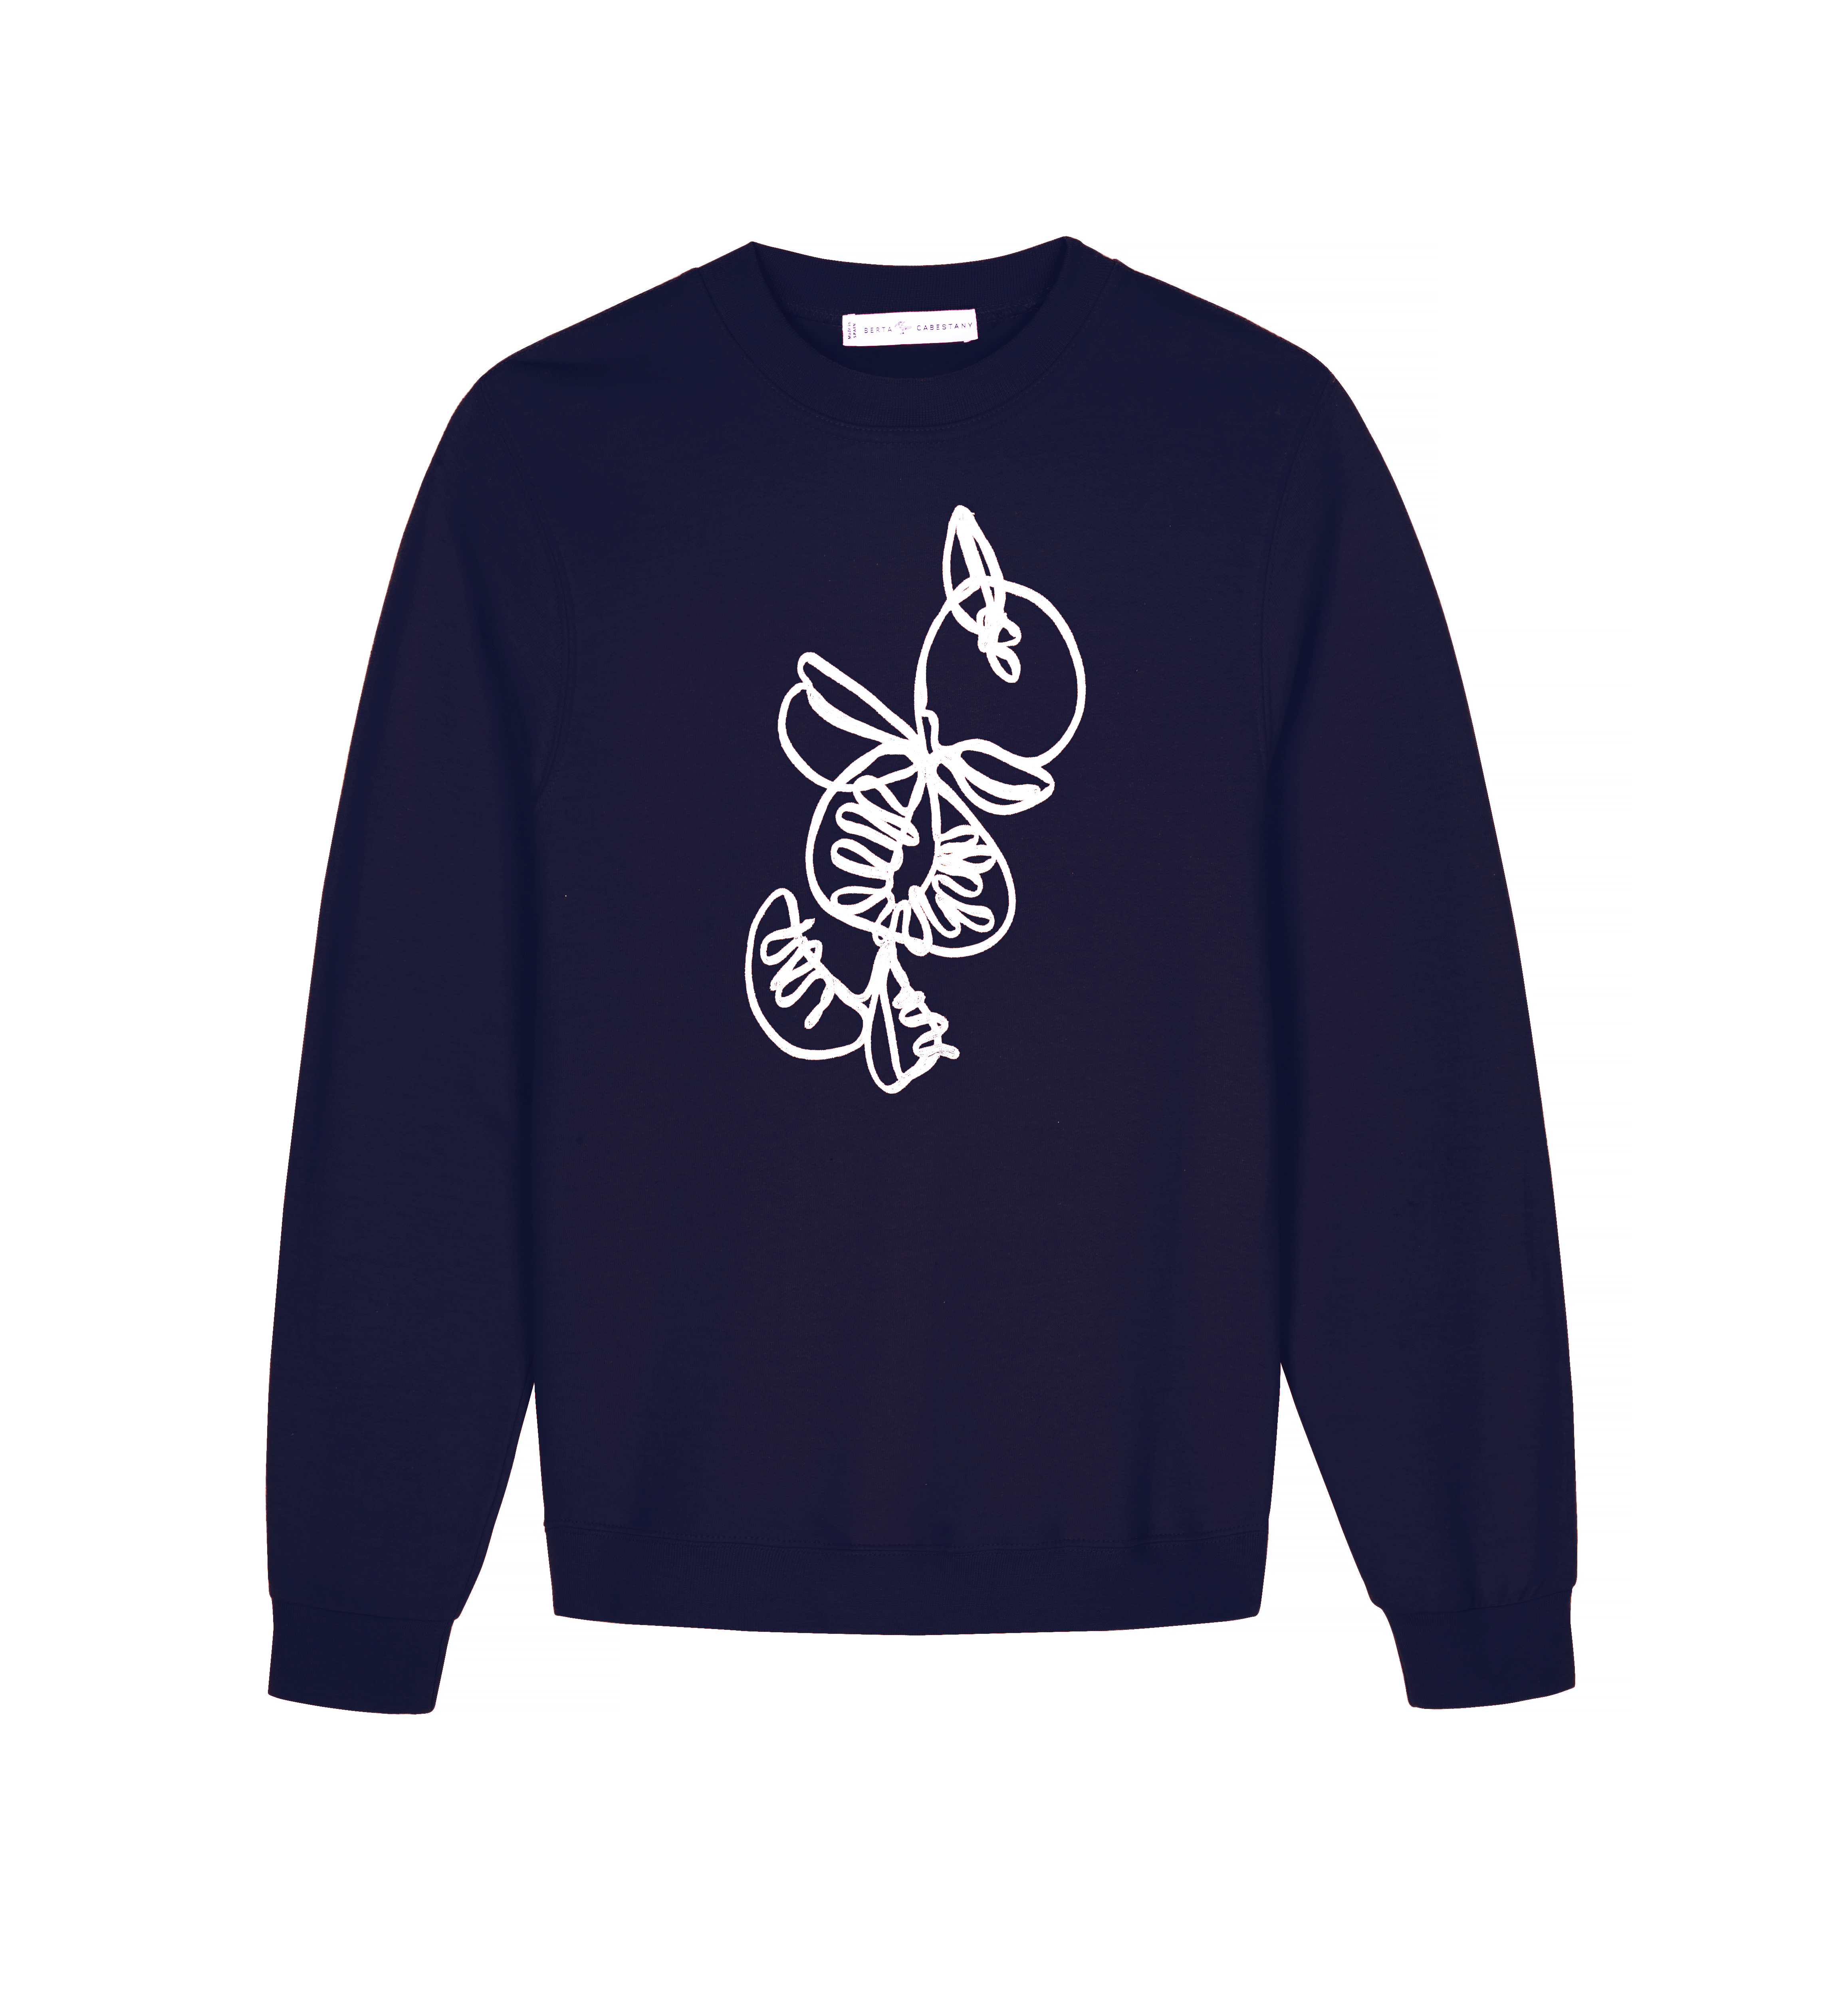 Calabaza Sweat - Blue by Berta Cabestany on curated-crowd.com